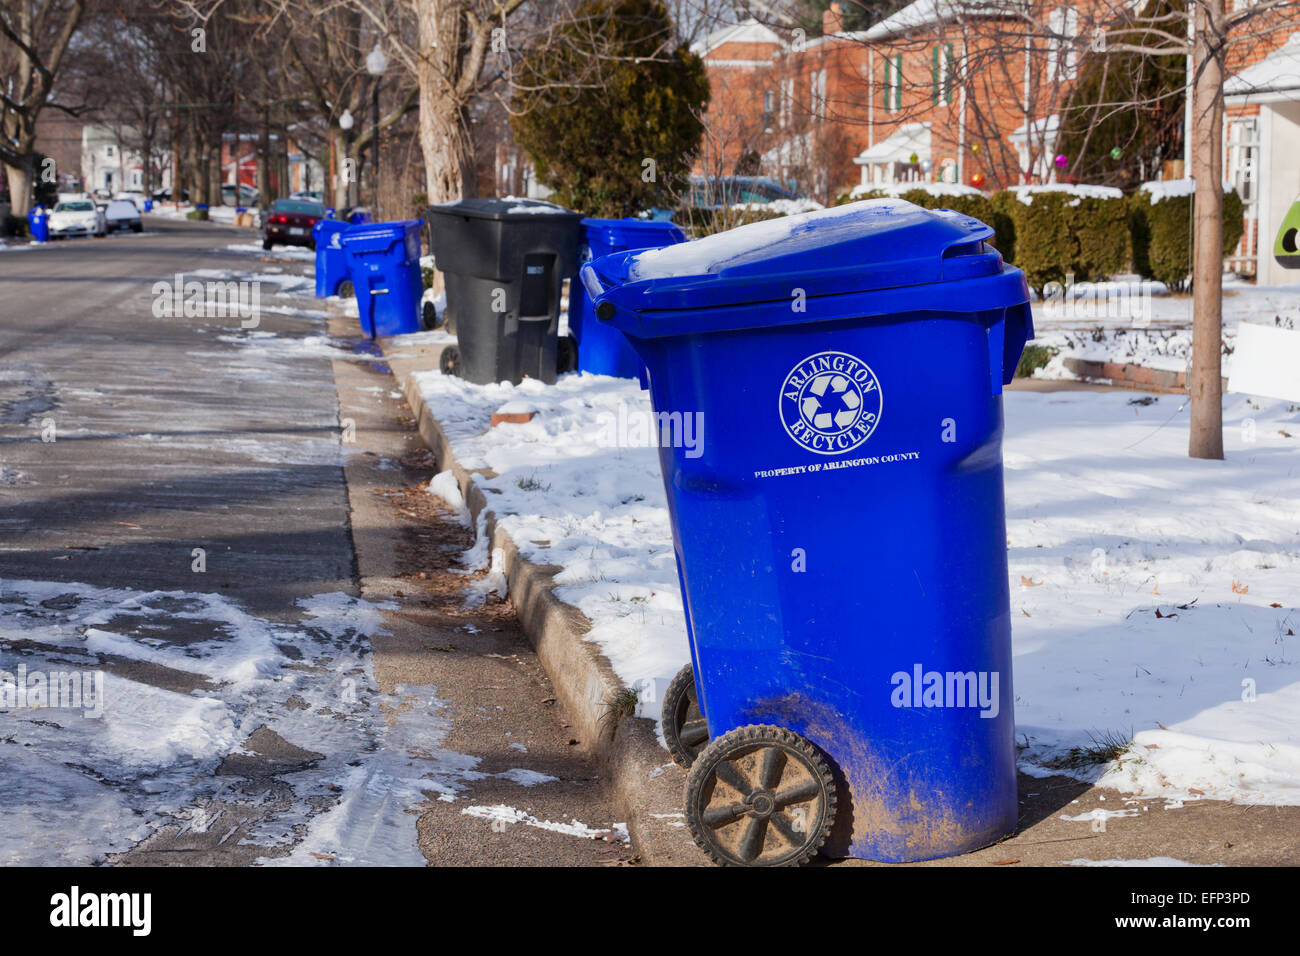 Recycling bins out for pickup - USA Stock Photo